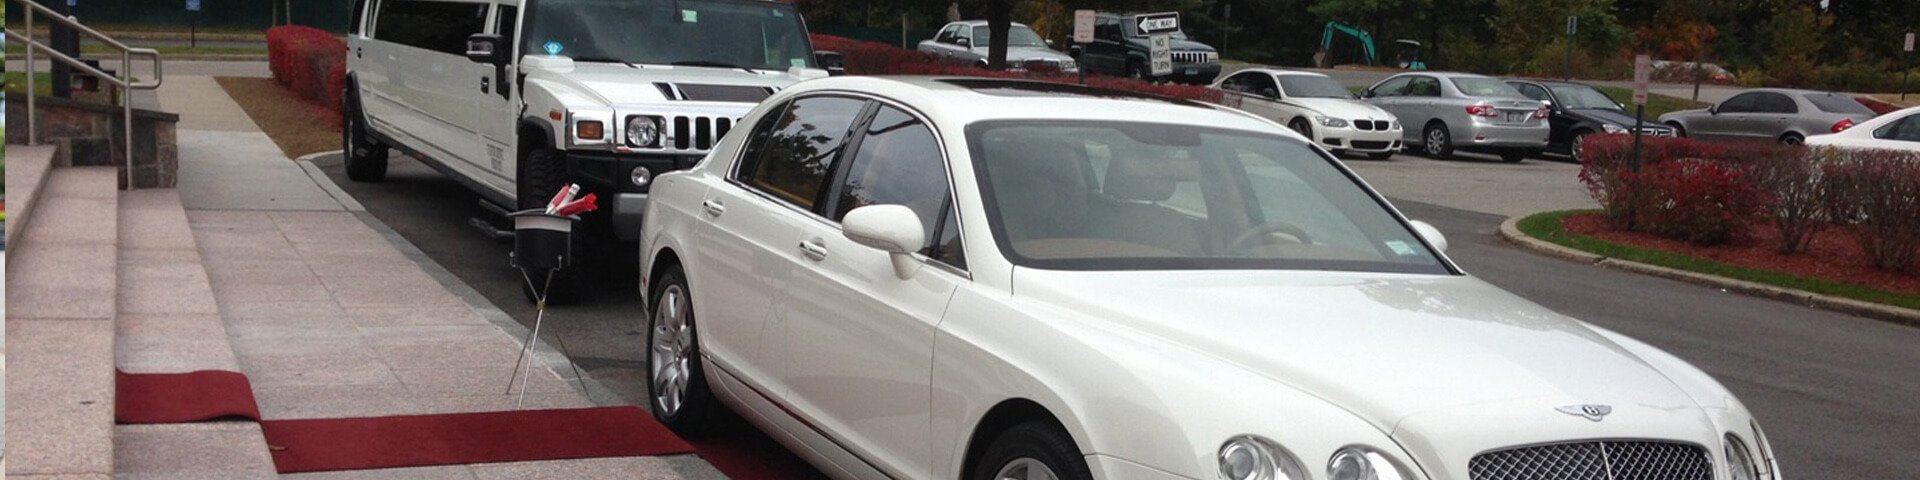 Westchester Limo